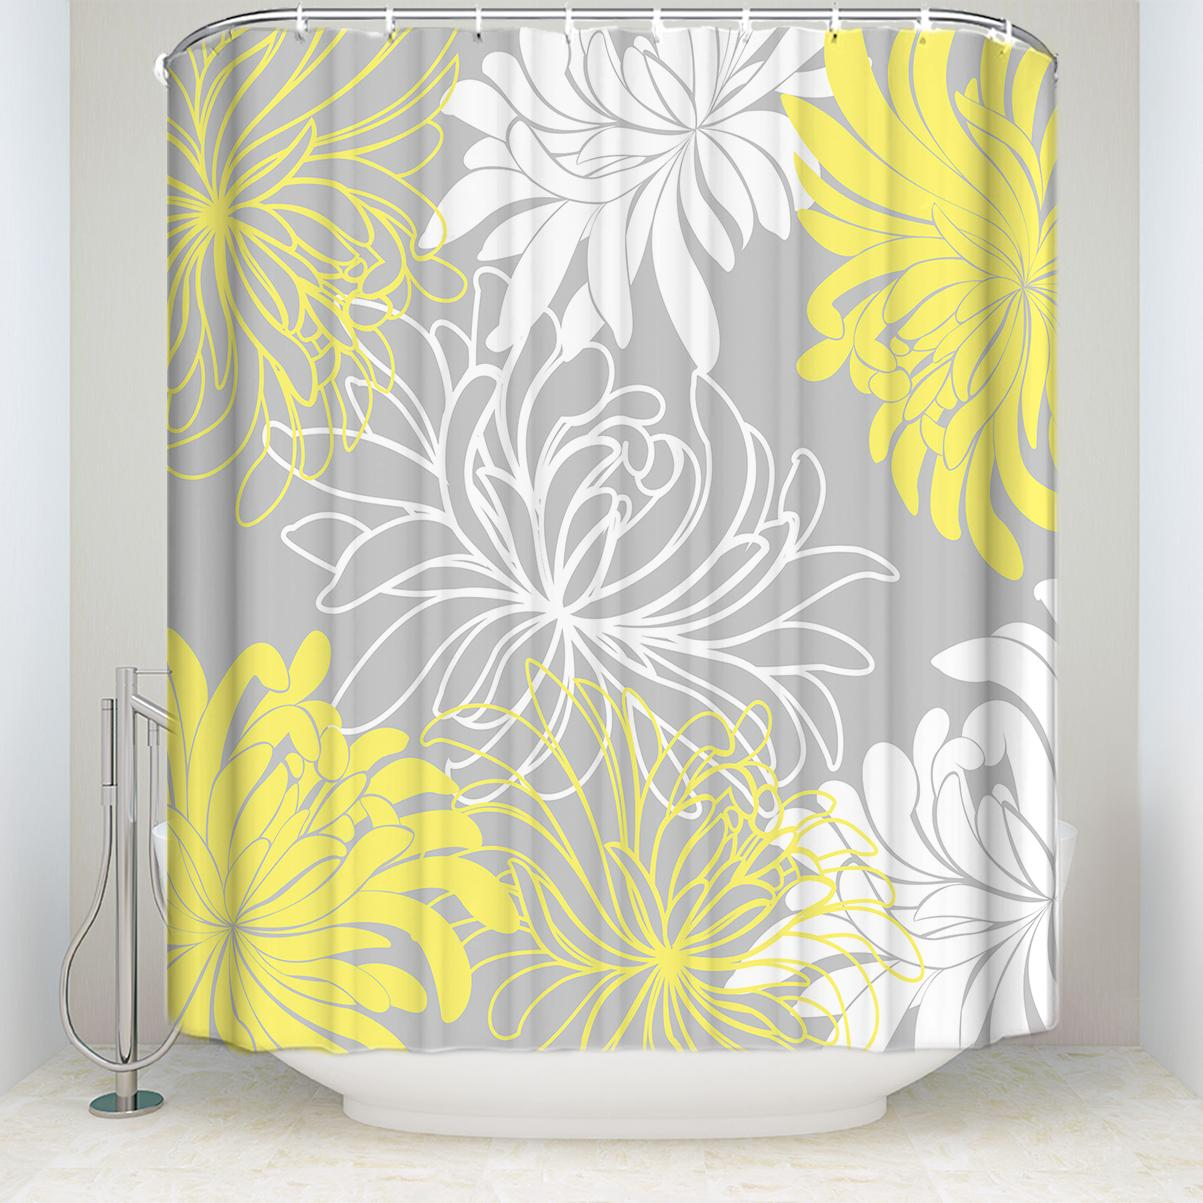 2019 Waterproof Floral Shower Curtain With Hooks Polyester Fabric Daisy Pattern Bathroom Curtains For Home Decor White Gray Yellow From Huayama